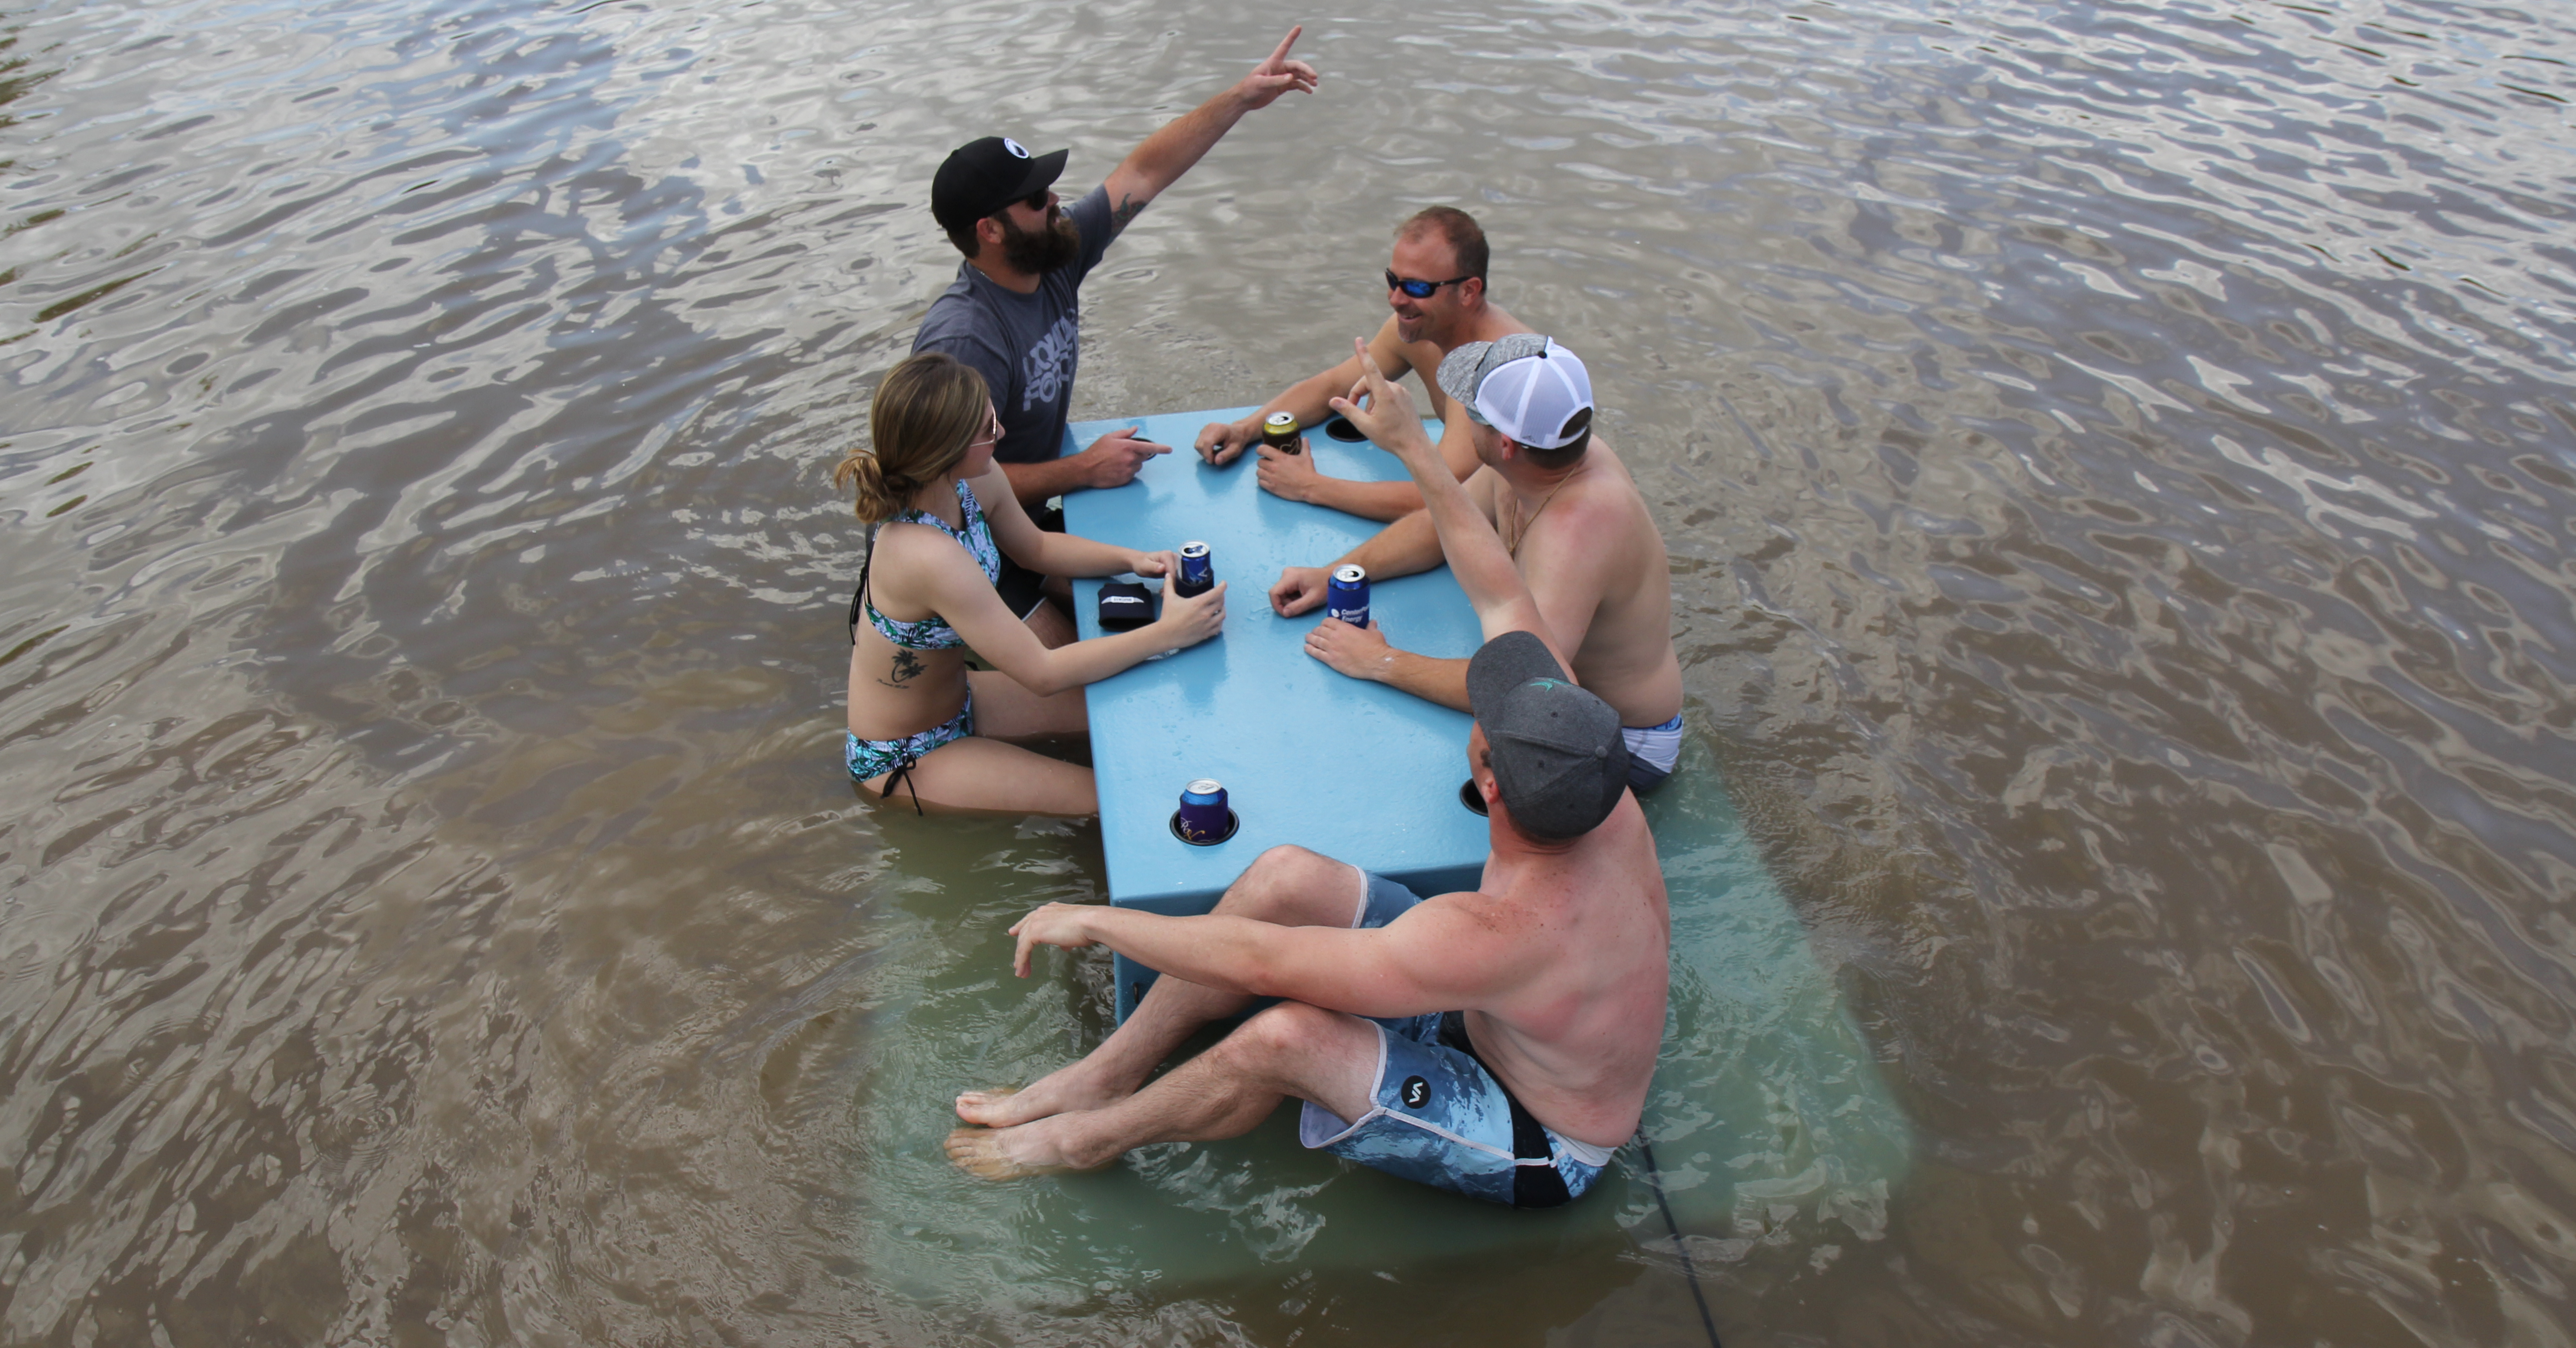 Table, Picnic, Picnic table, Water, Tray, Cooler, Drink, Eating, Vacation, Plastic, water, Fun, Vacation, Recreation, Water, Leisure, Summer, Tubing, Vehicle